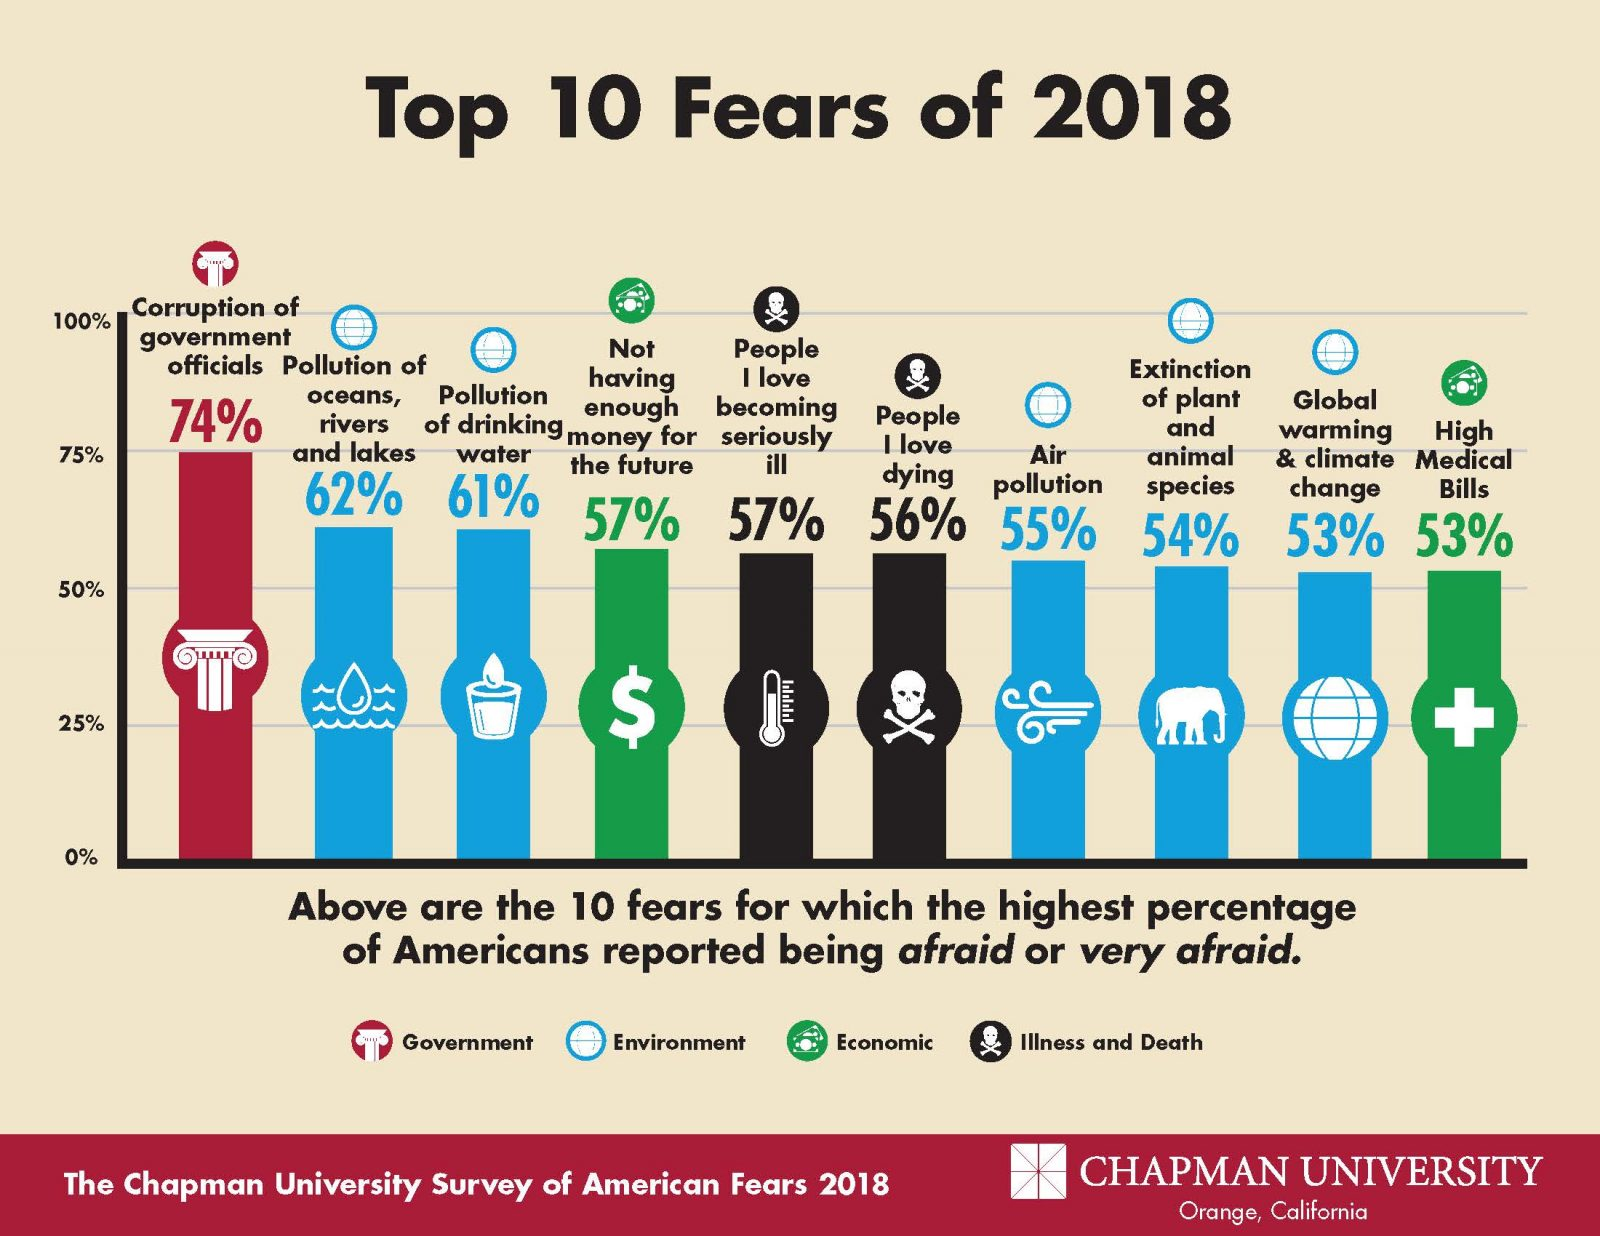 Top 10 Fears of 2018